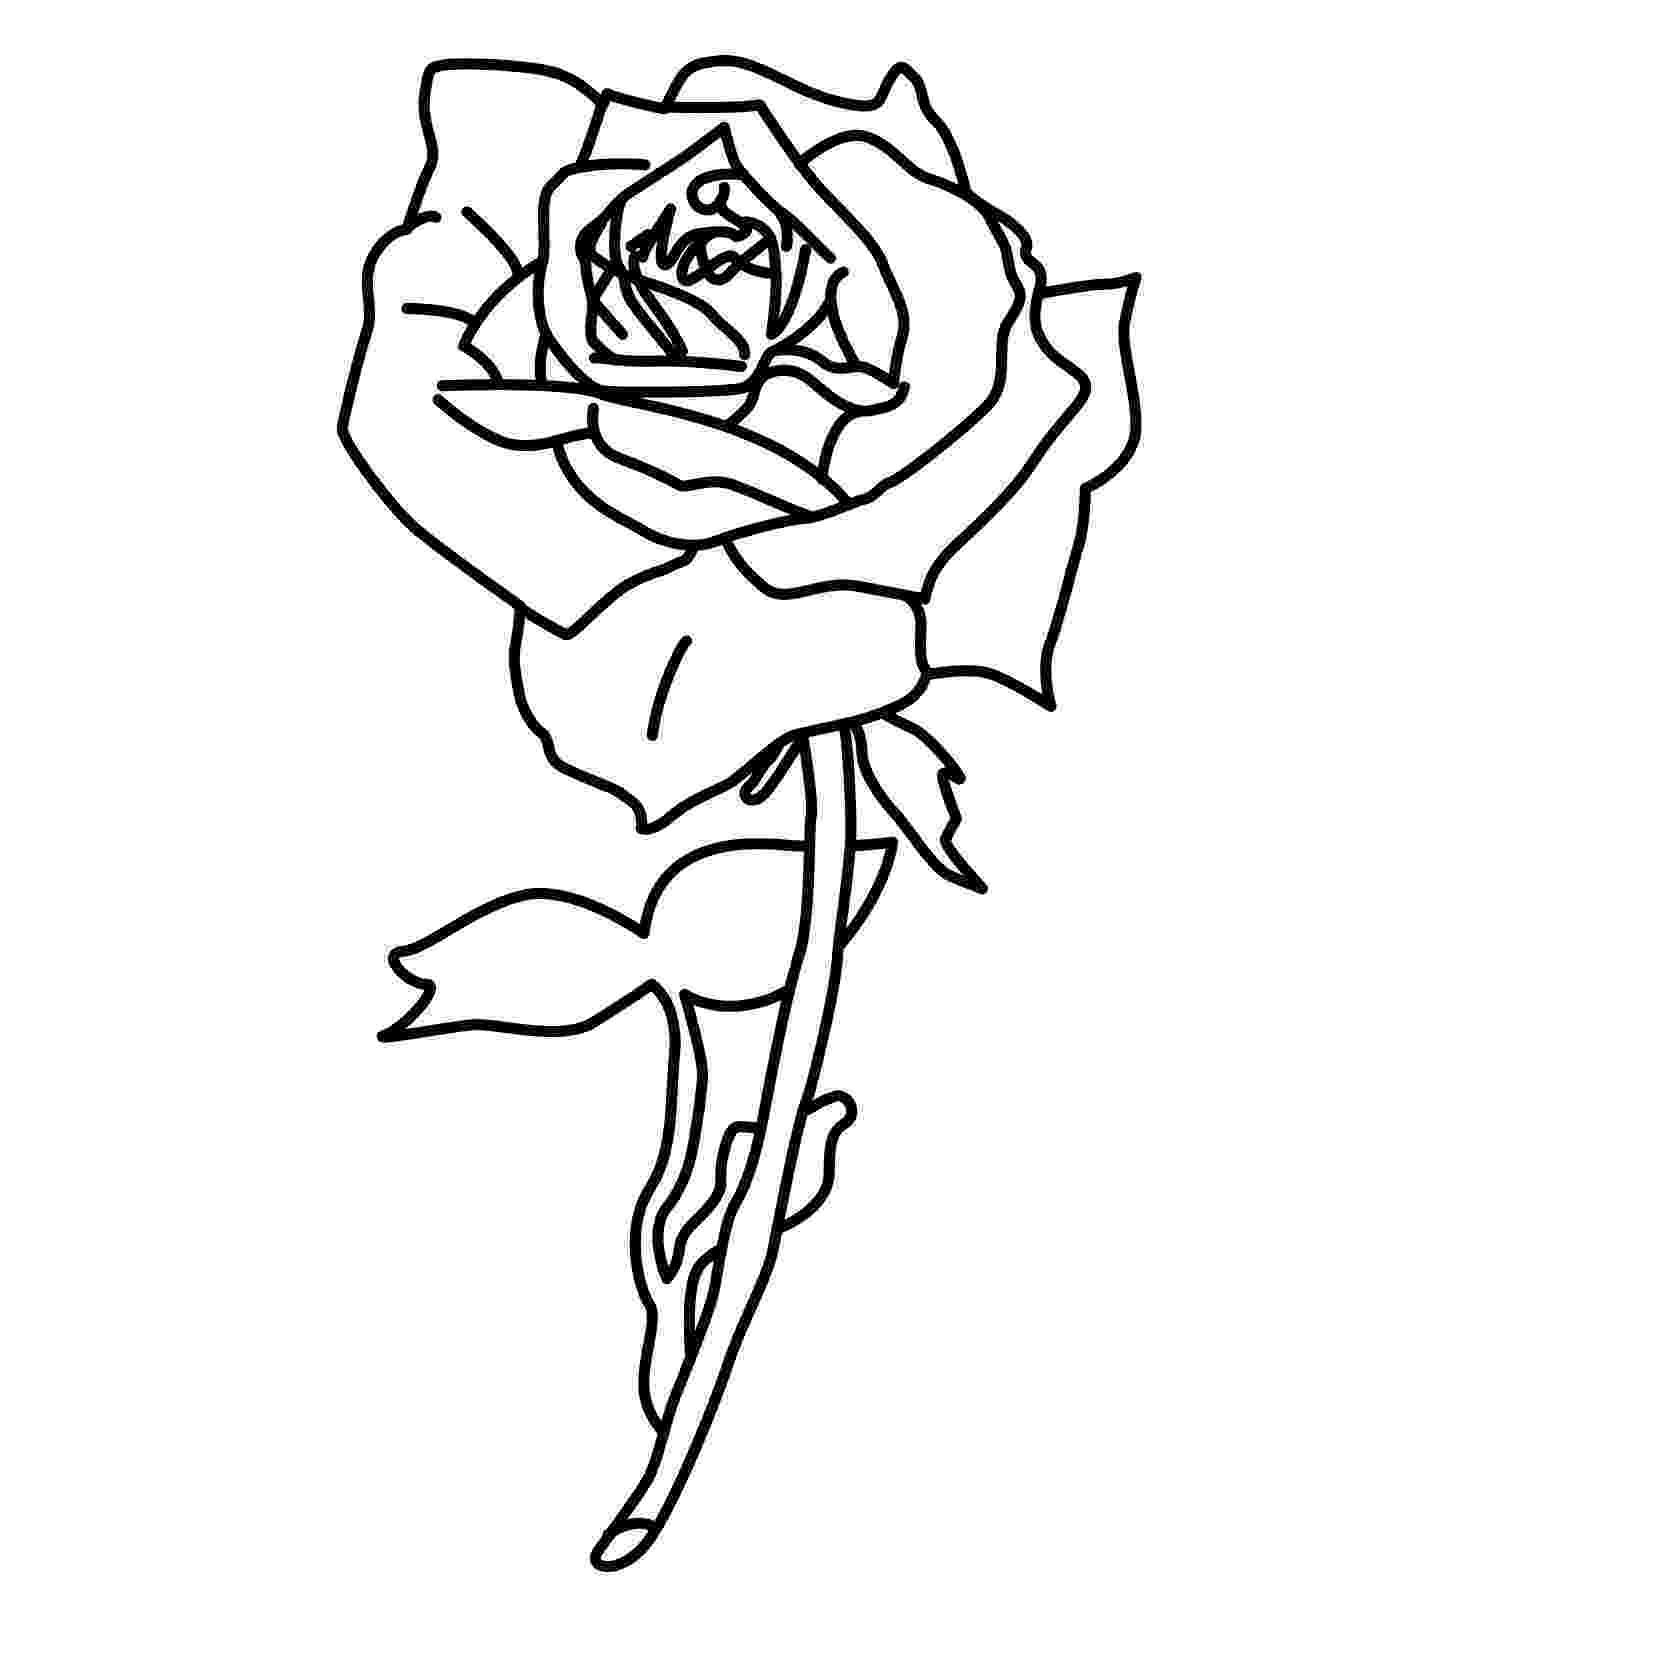 printable roses roses coloring pages to download and print for free roses printable